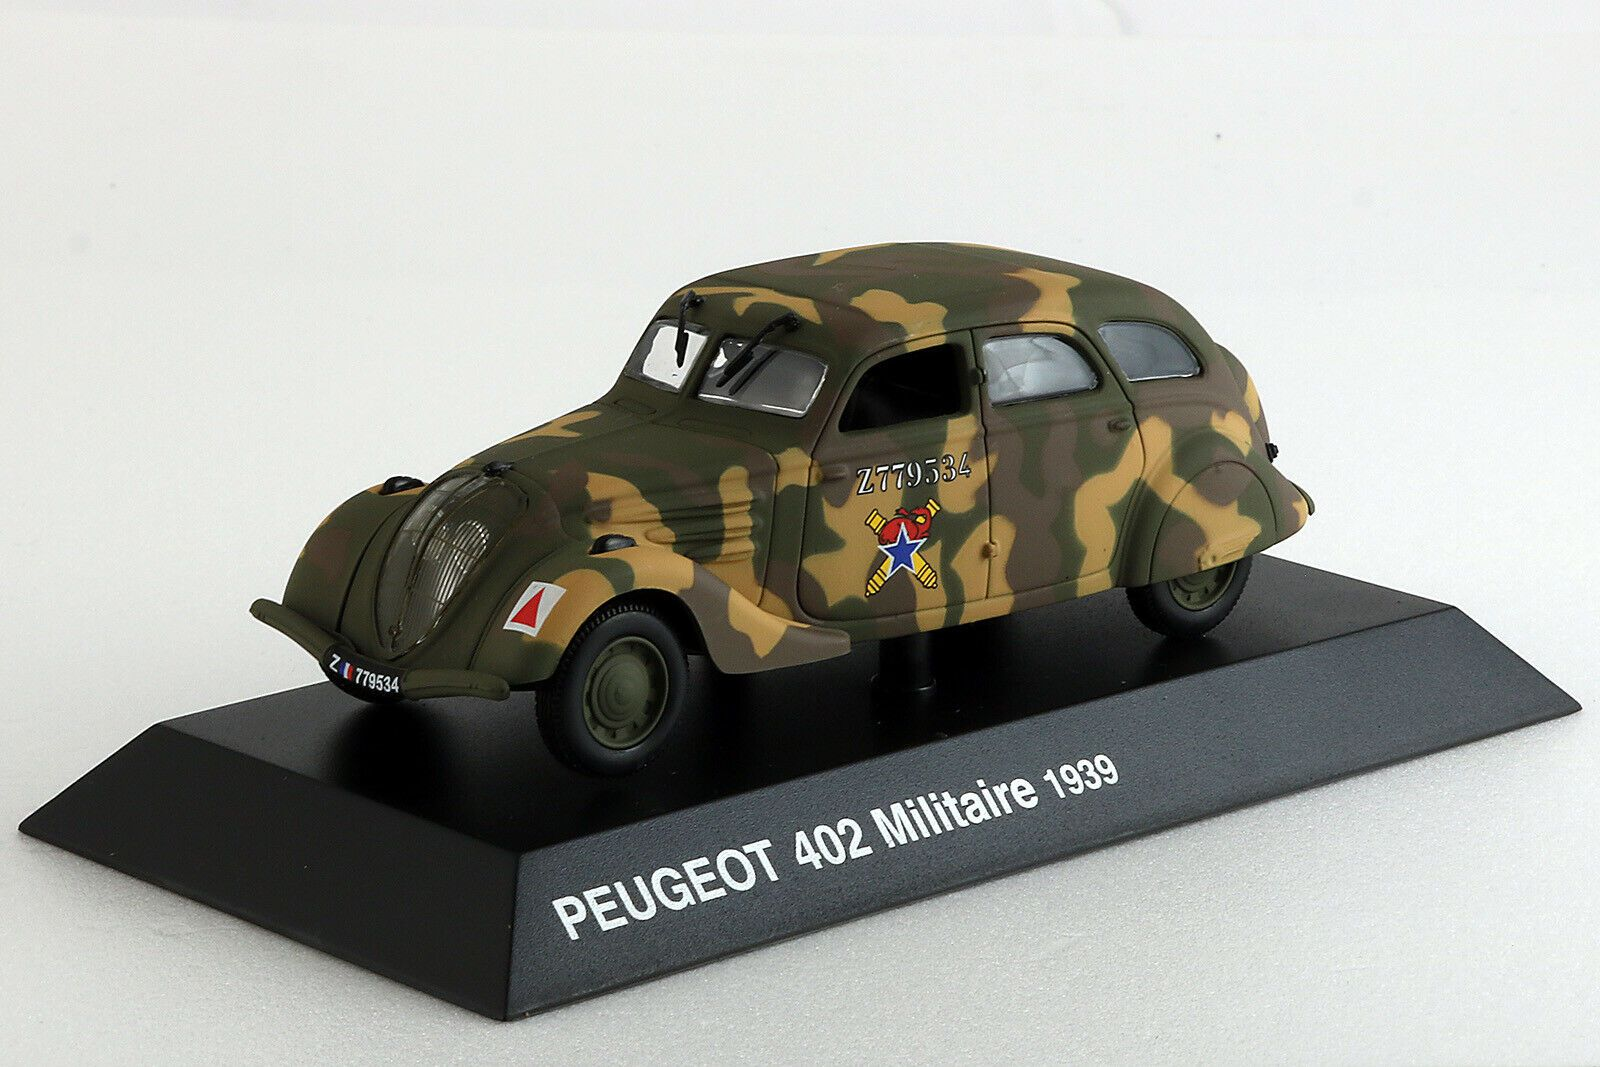 PEUGEOT 402 B - 1/43 - Hachette - Collection Peugeot